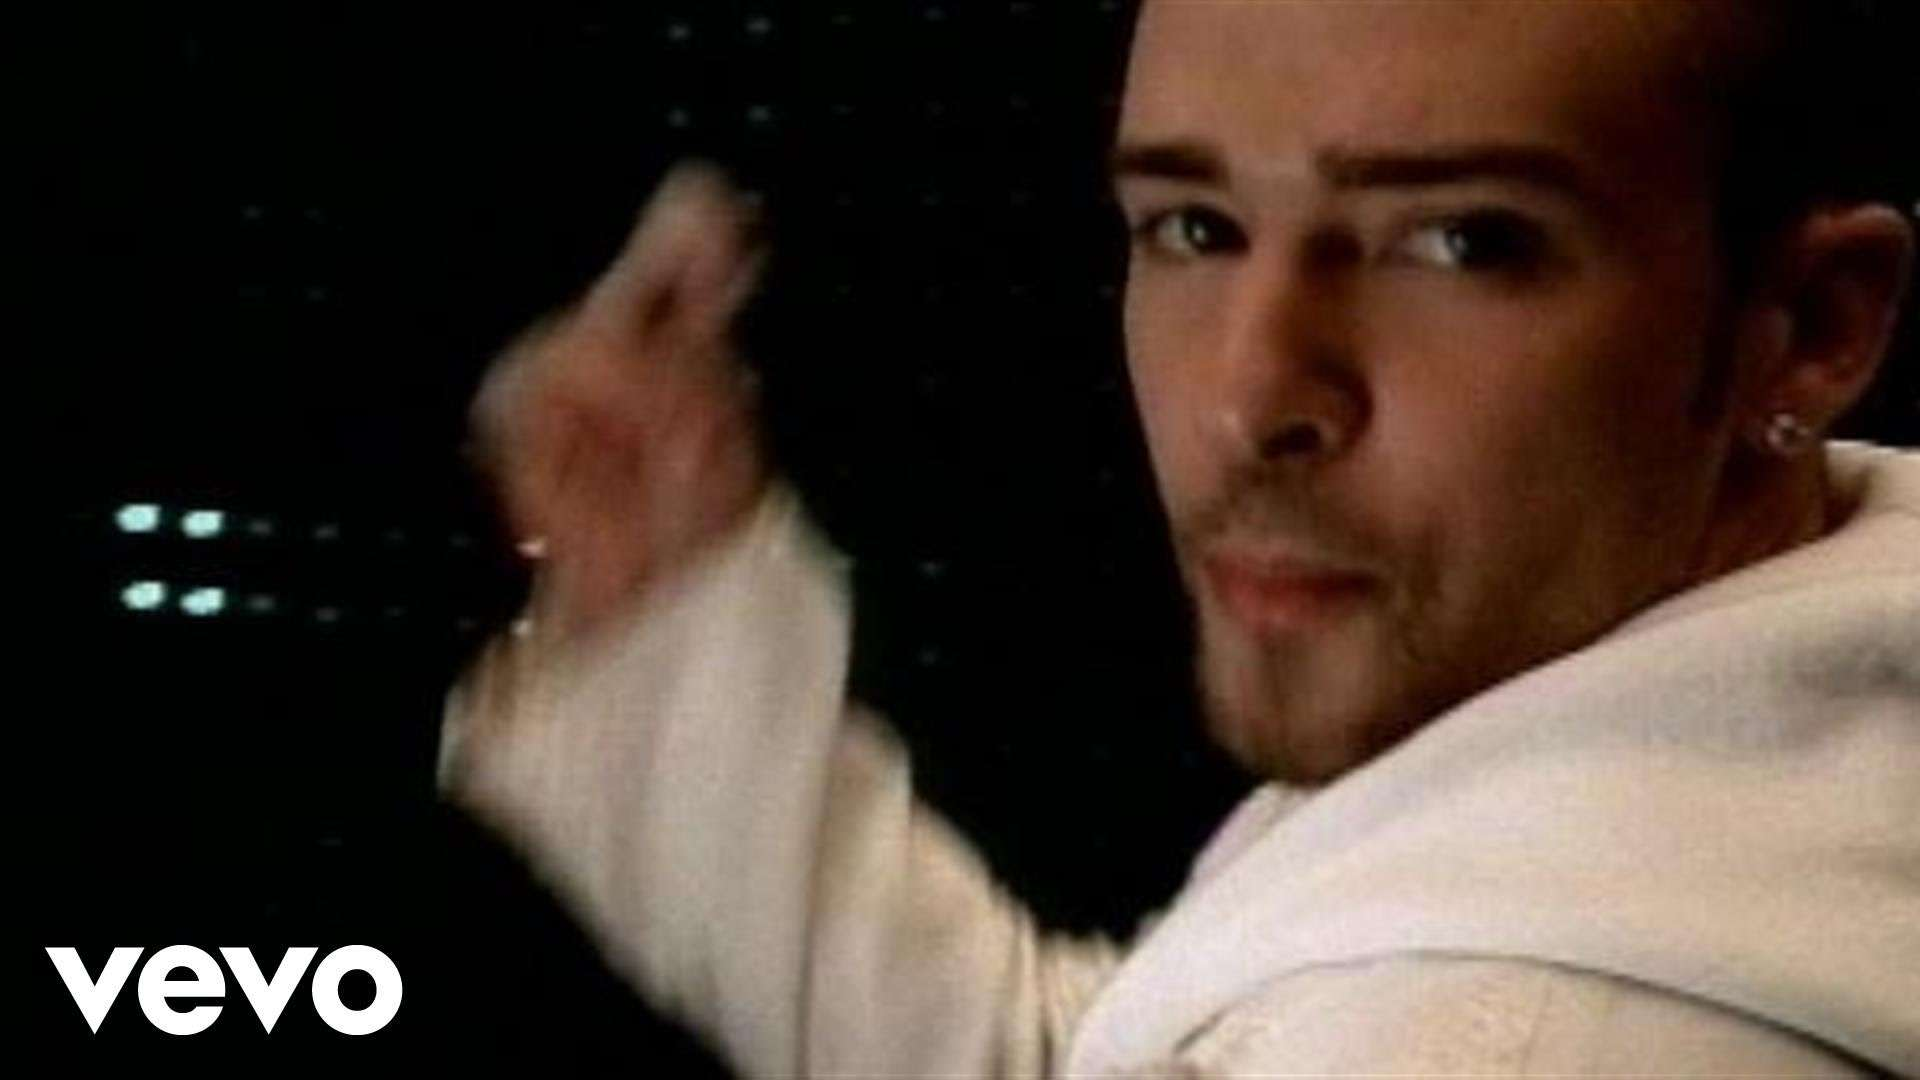 Justin Timberlake - Rock Your Body - YouTube